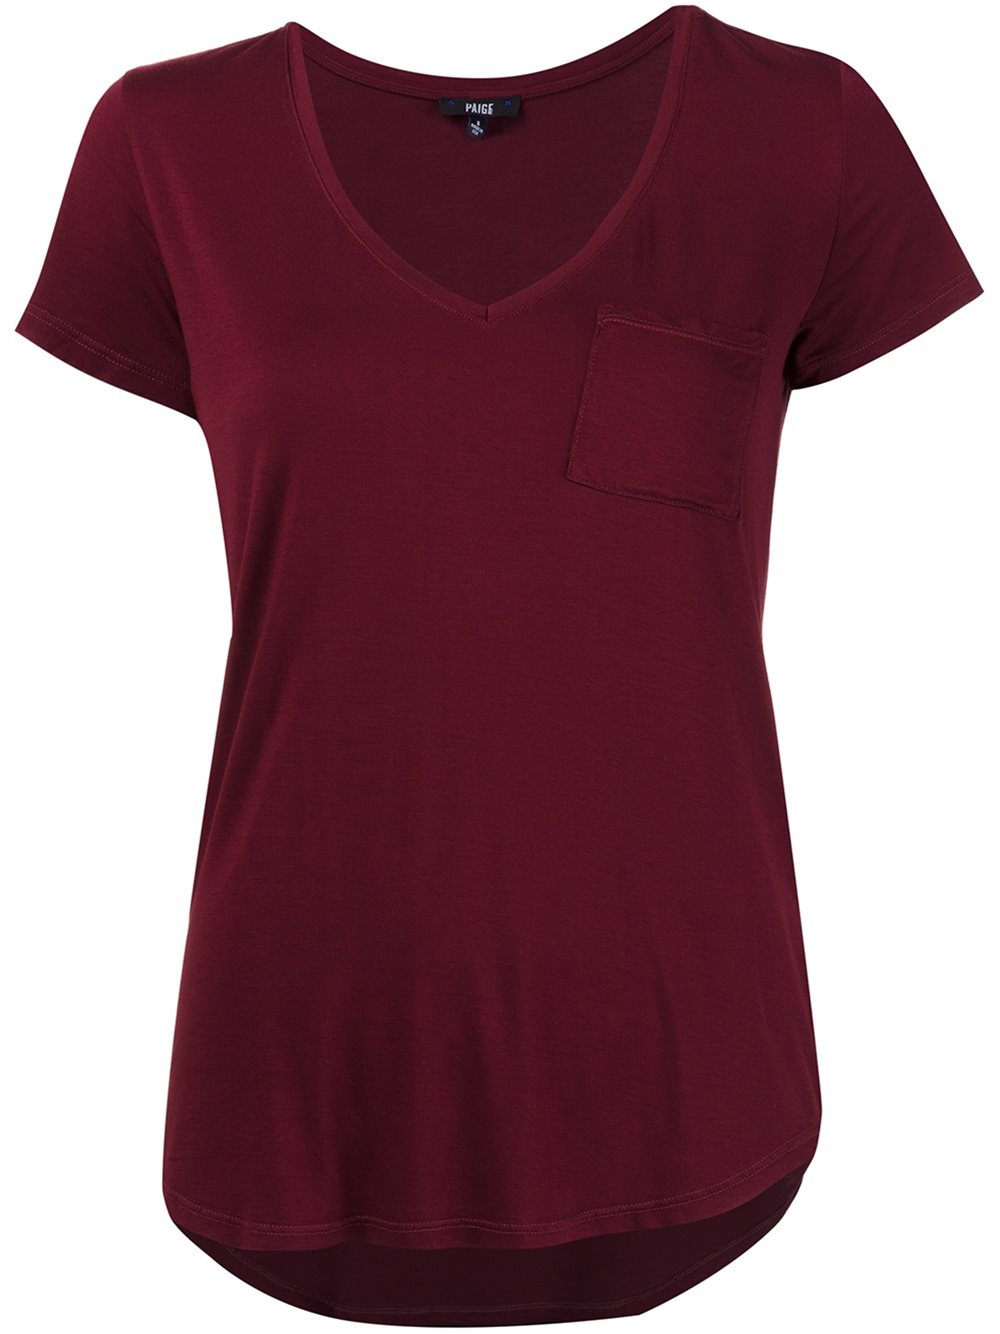 Lyst paige scoop neck t shirt in black for Scoop neck t shirt